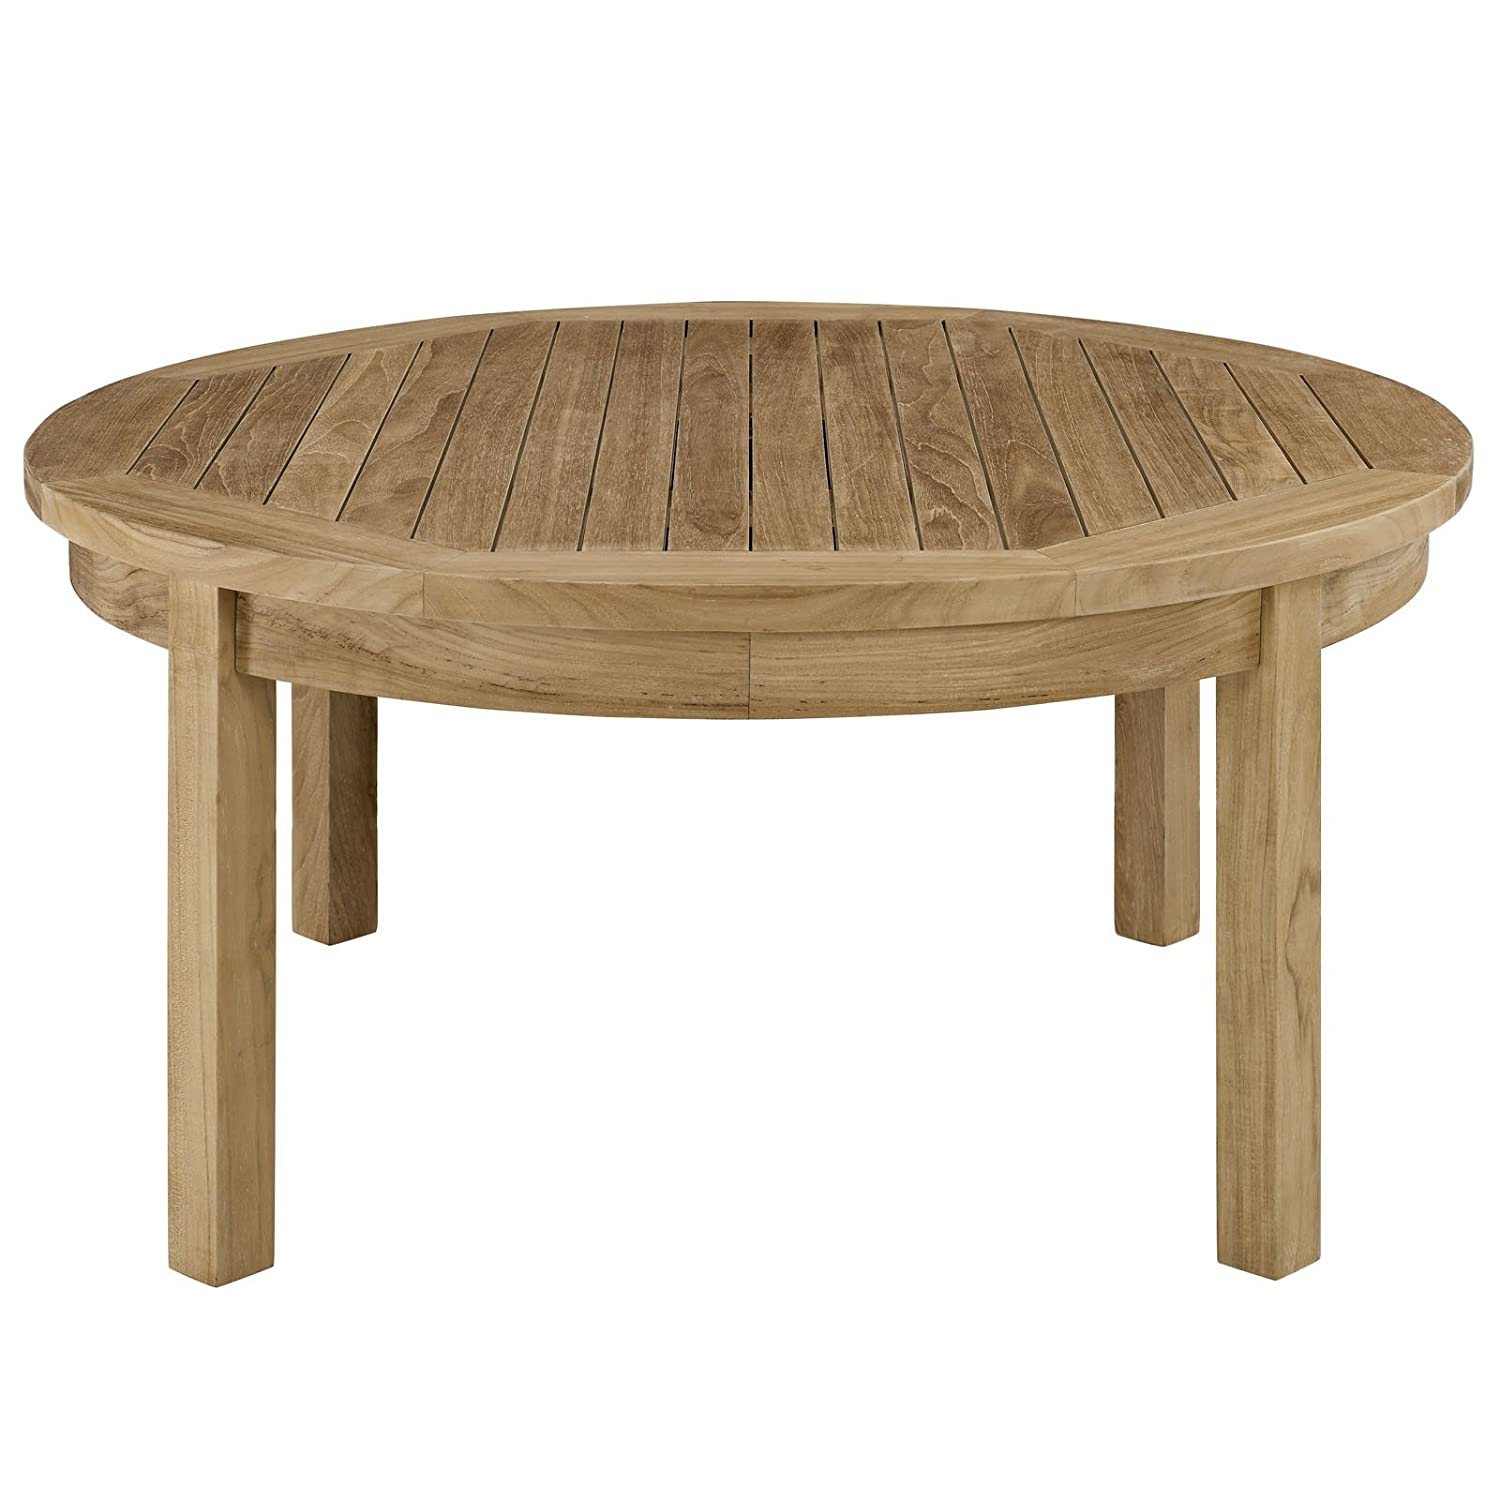 Amazoncom Modway Marina Teak Wood Outdoor Patio Round Coffee Table